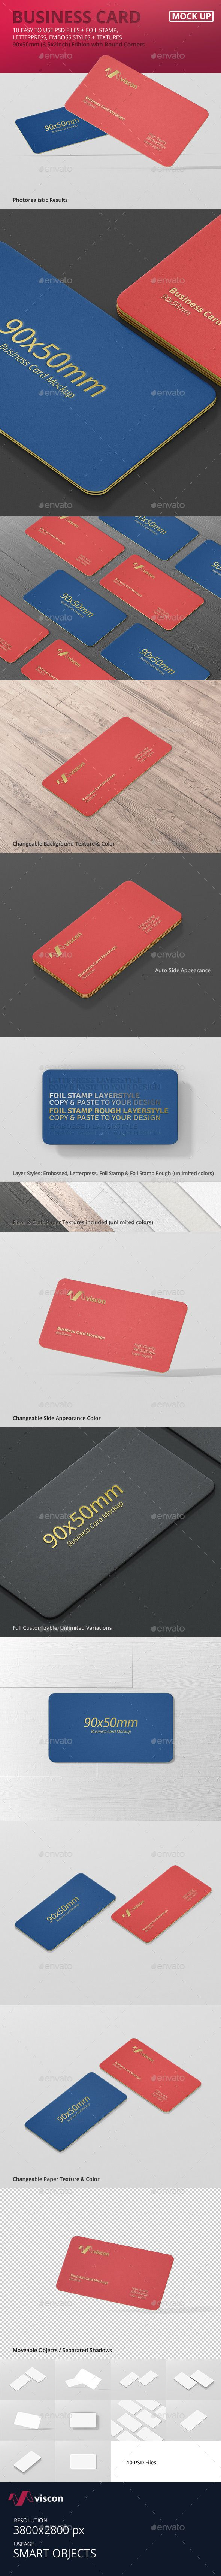 Business Card Mockup Round Corner — Photoshop PSD #foil #print • Available here → https://graphicriver.net/item/business-card-mockup-round-corner/15304262?ref=pxcr